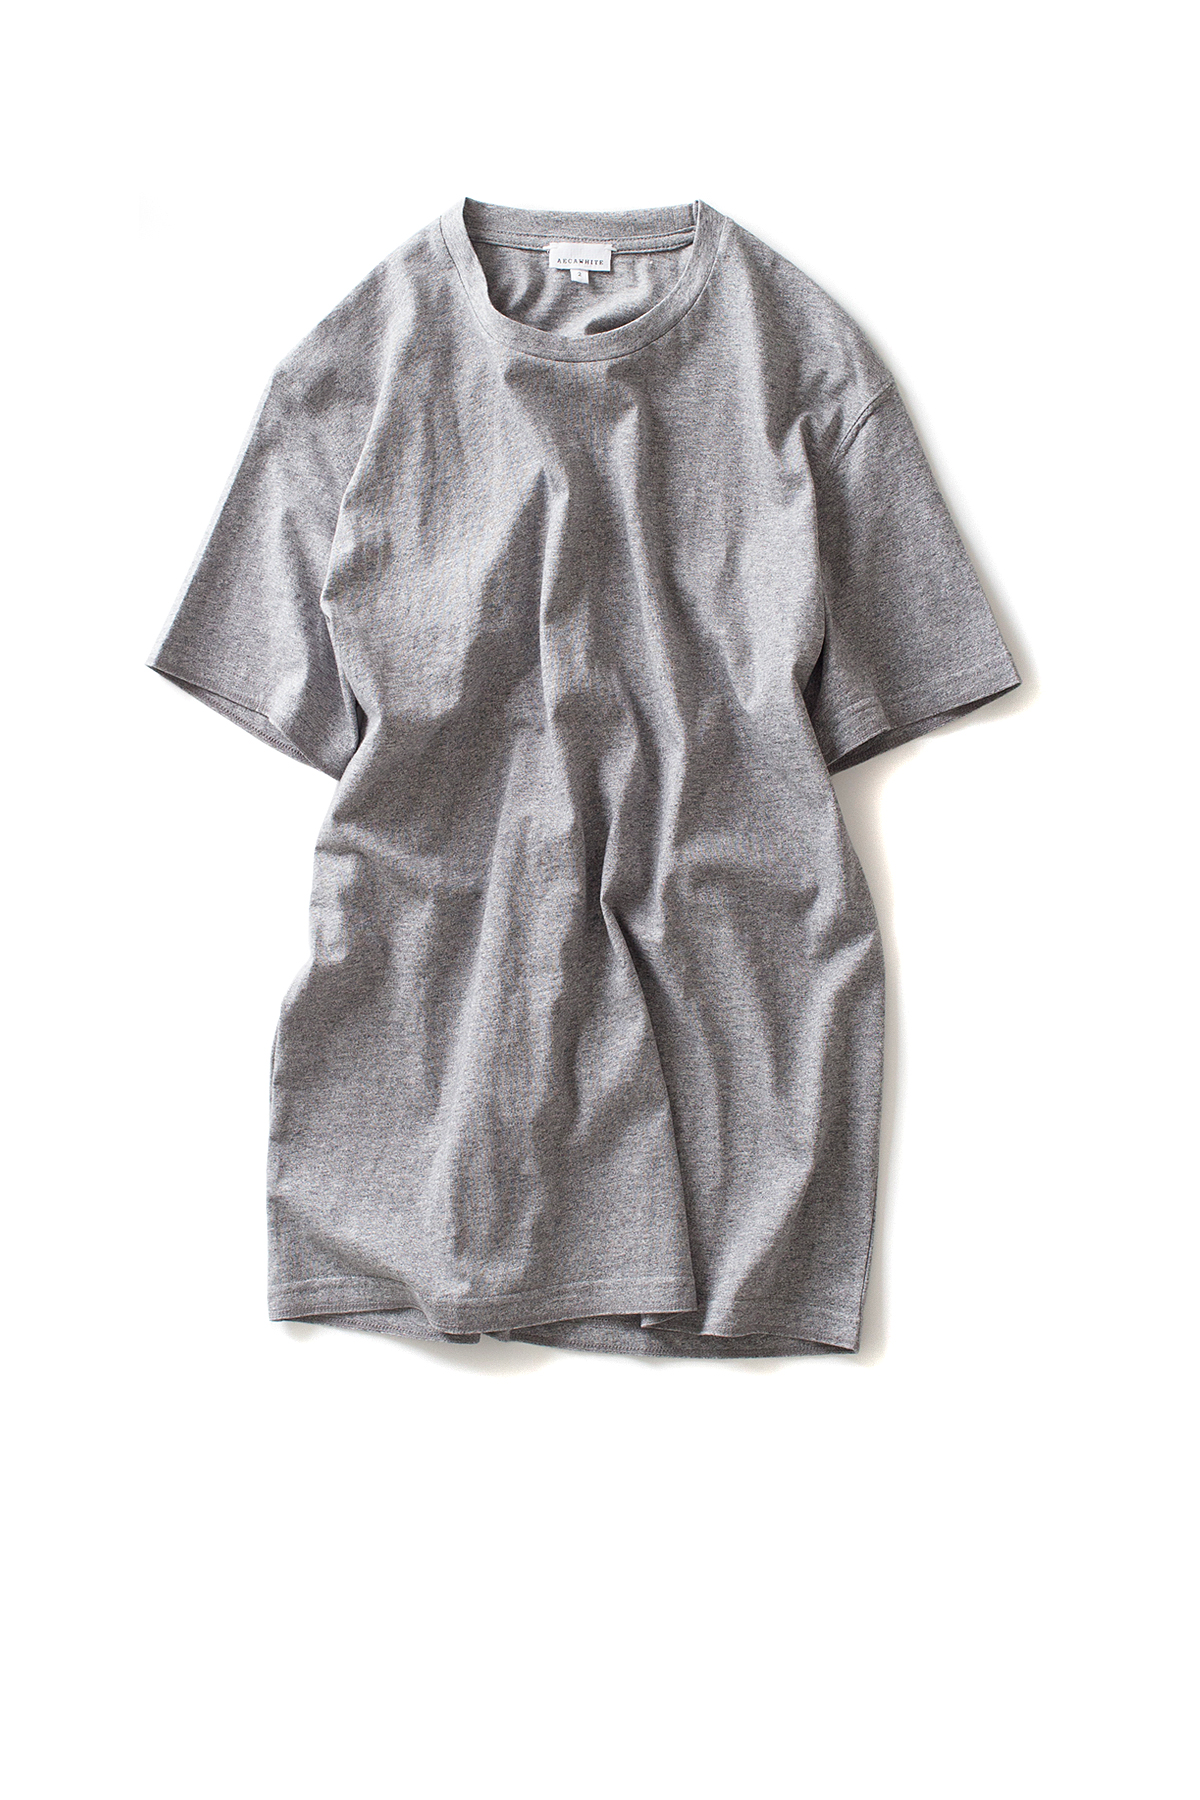 AECA WHITE : Half Sleeve Tee (Grey)